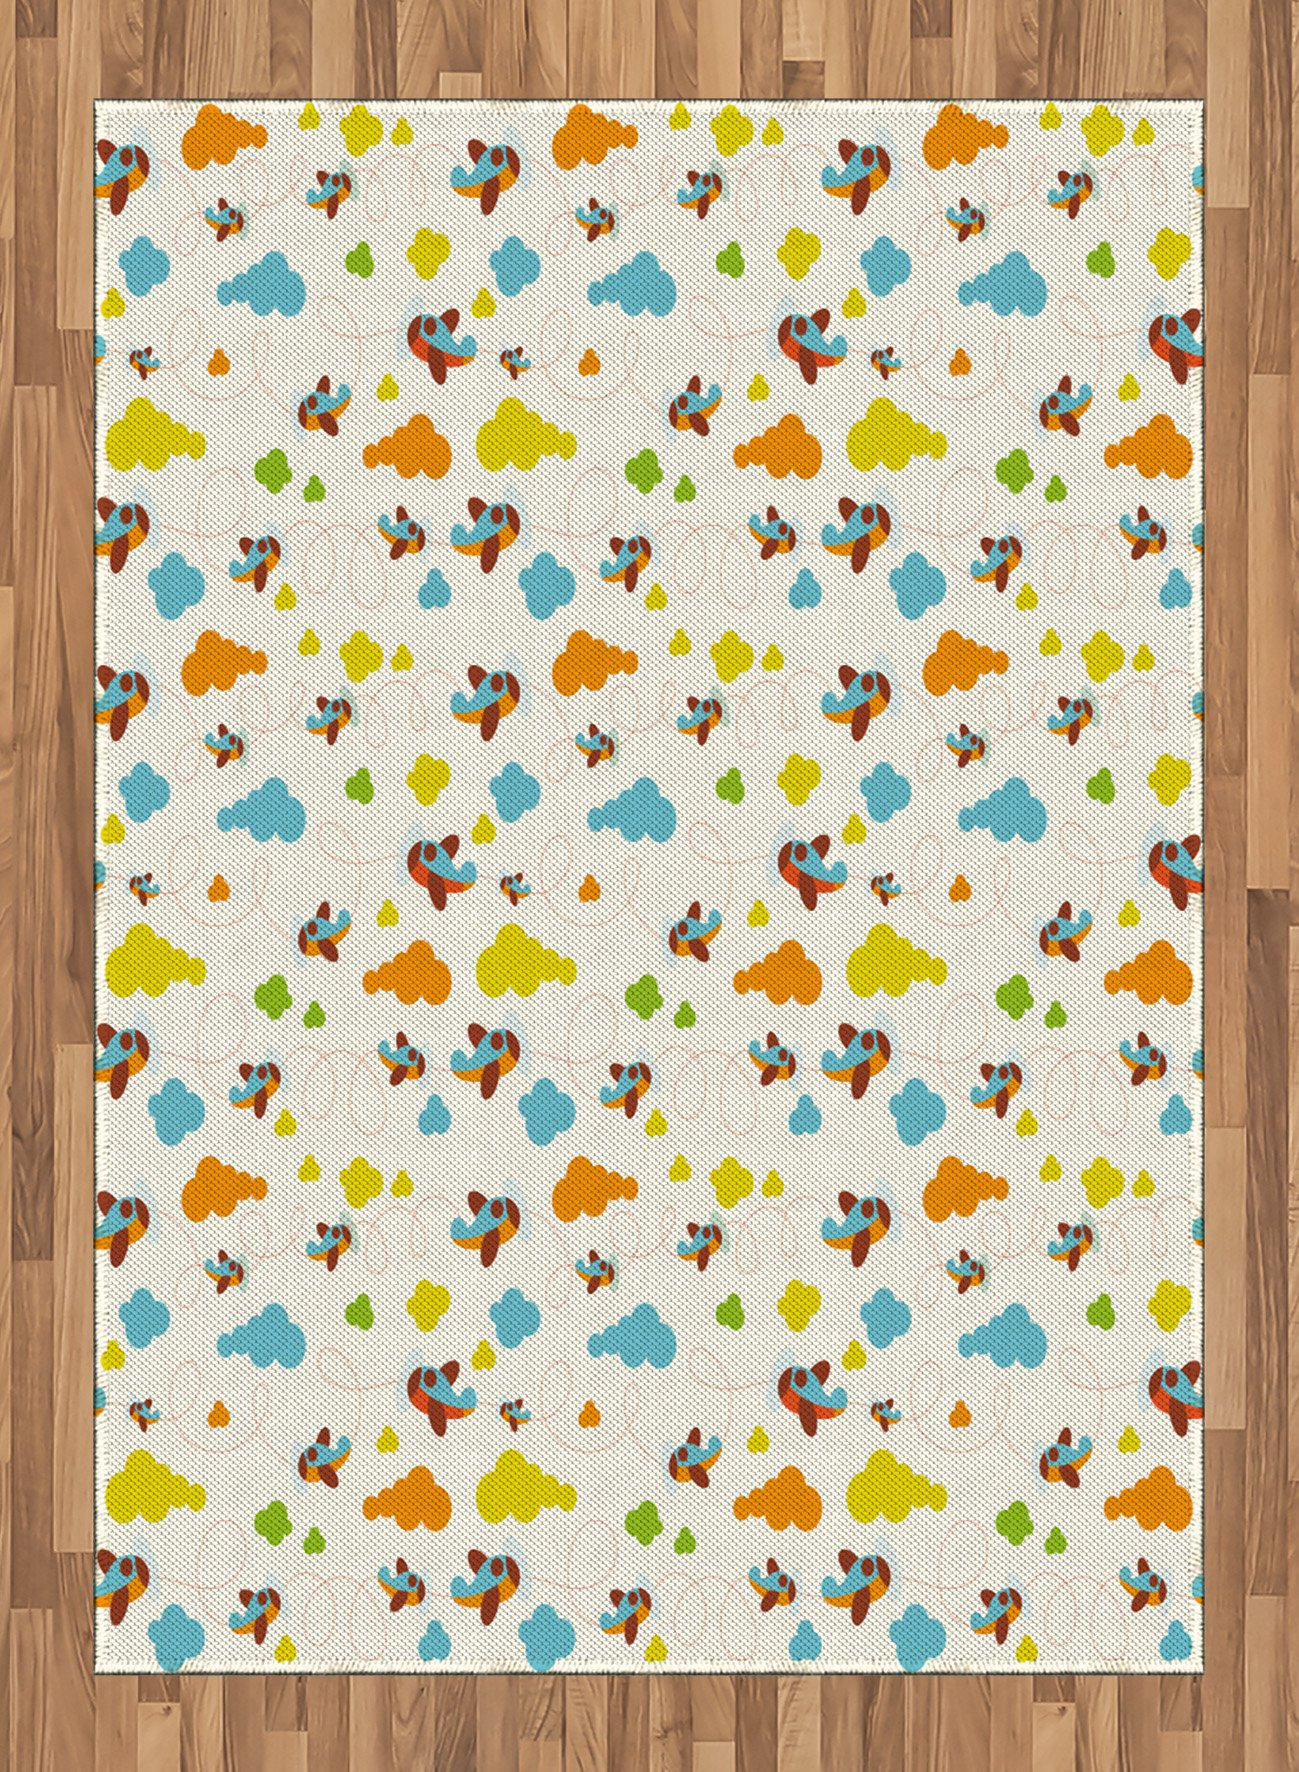 Boy's Room Area Rug by Lunarable, Flying Airplanes with a Cute Cartoon Style Fun Clouds in Various Colors, Flat Woven Accent Rug for Living Room Bedroom Dining Room, 5.2 x 7.5 FT, Blue Dark Orange